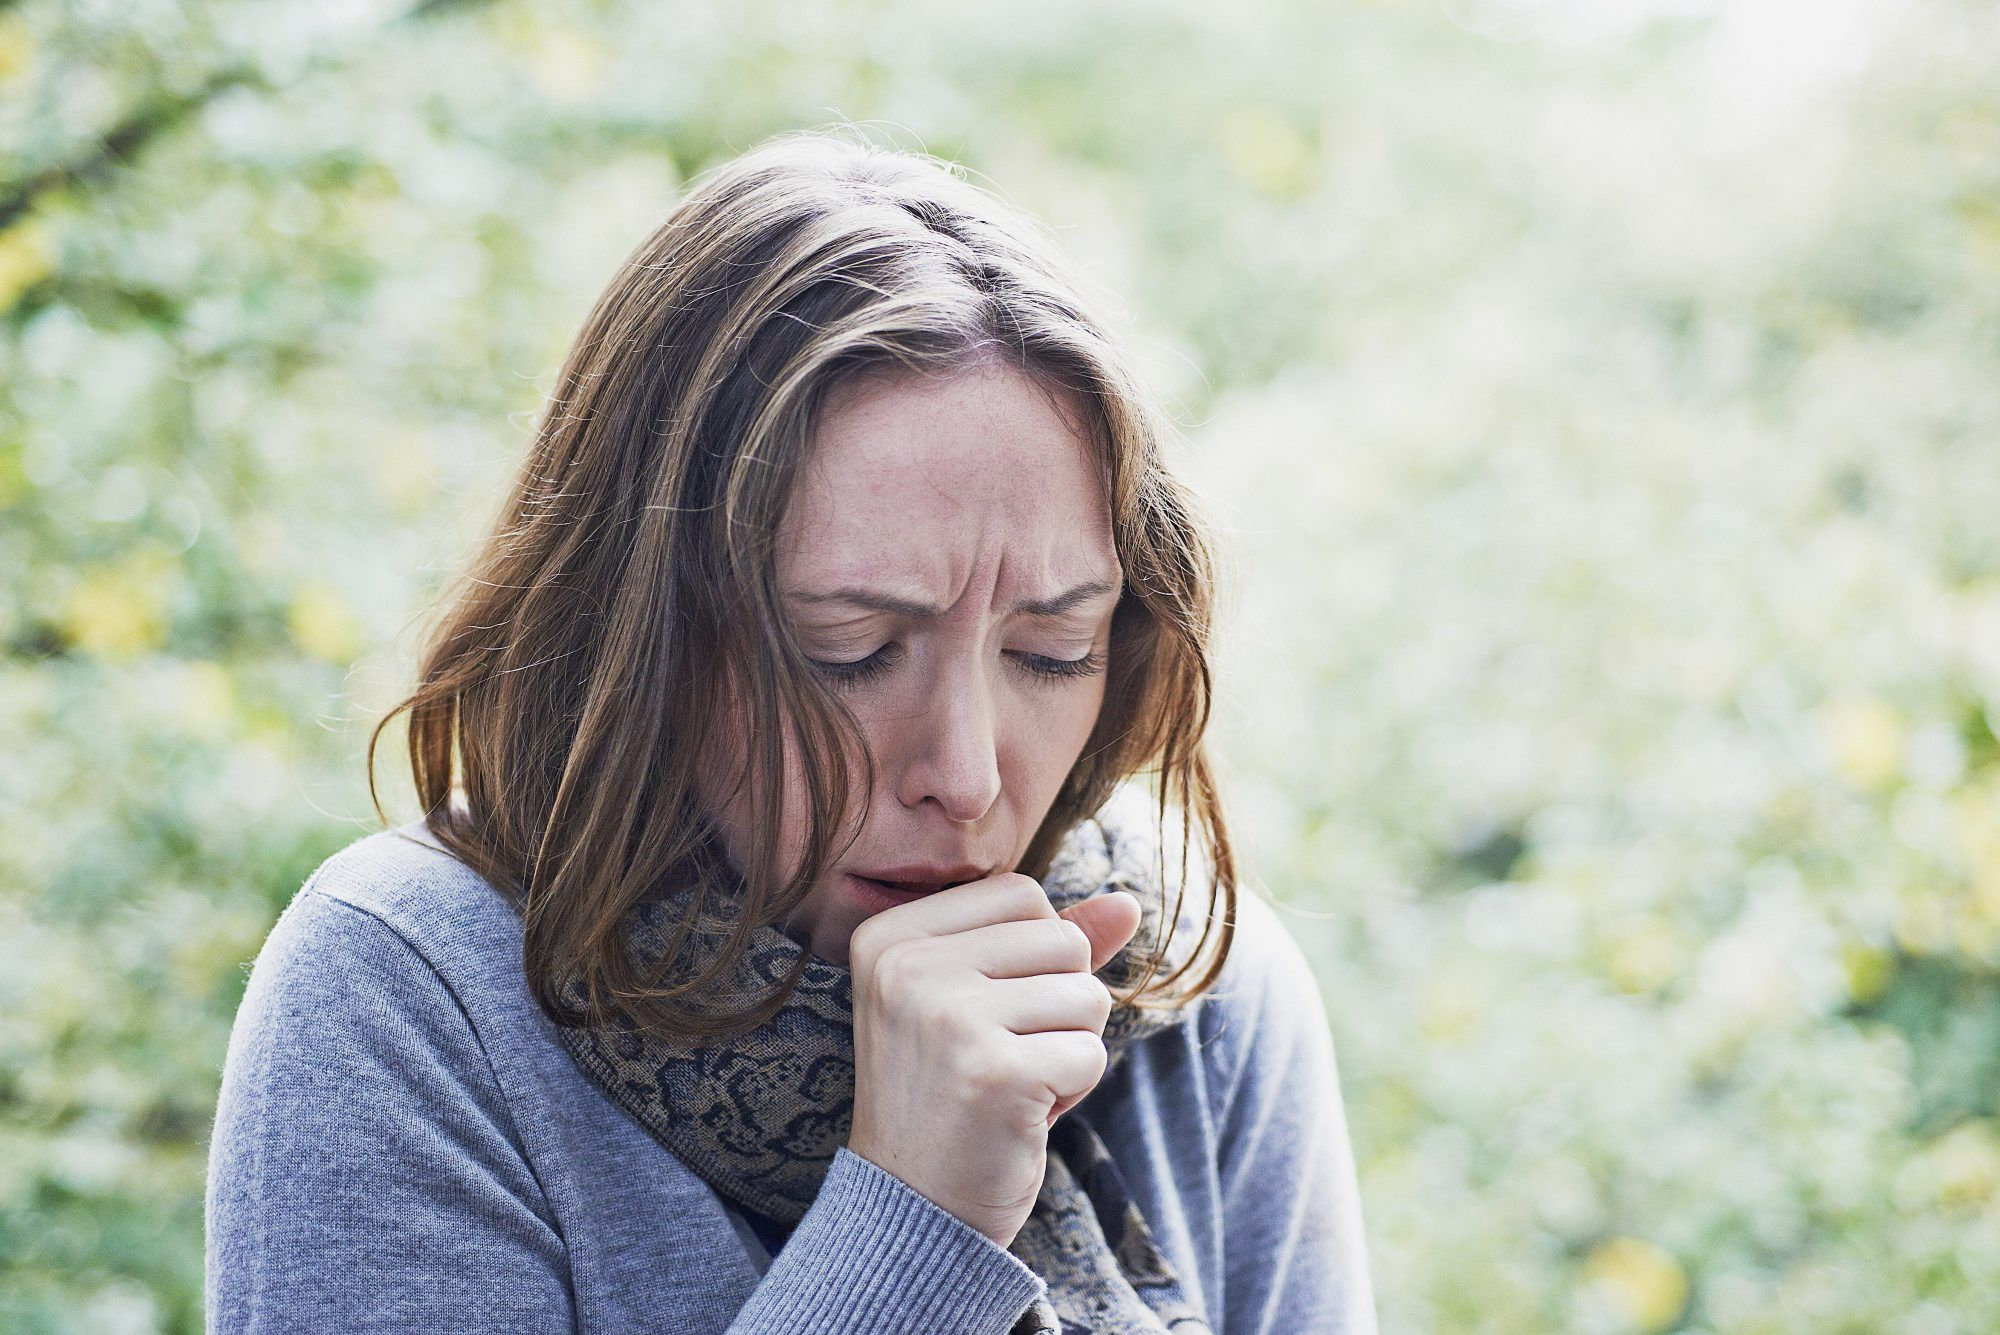 6f05c165189bf9750123c3f8cf06b34d - How To Get Rid Of A Lingering Cough After Pneumonia